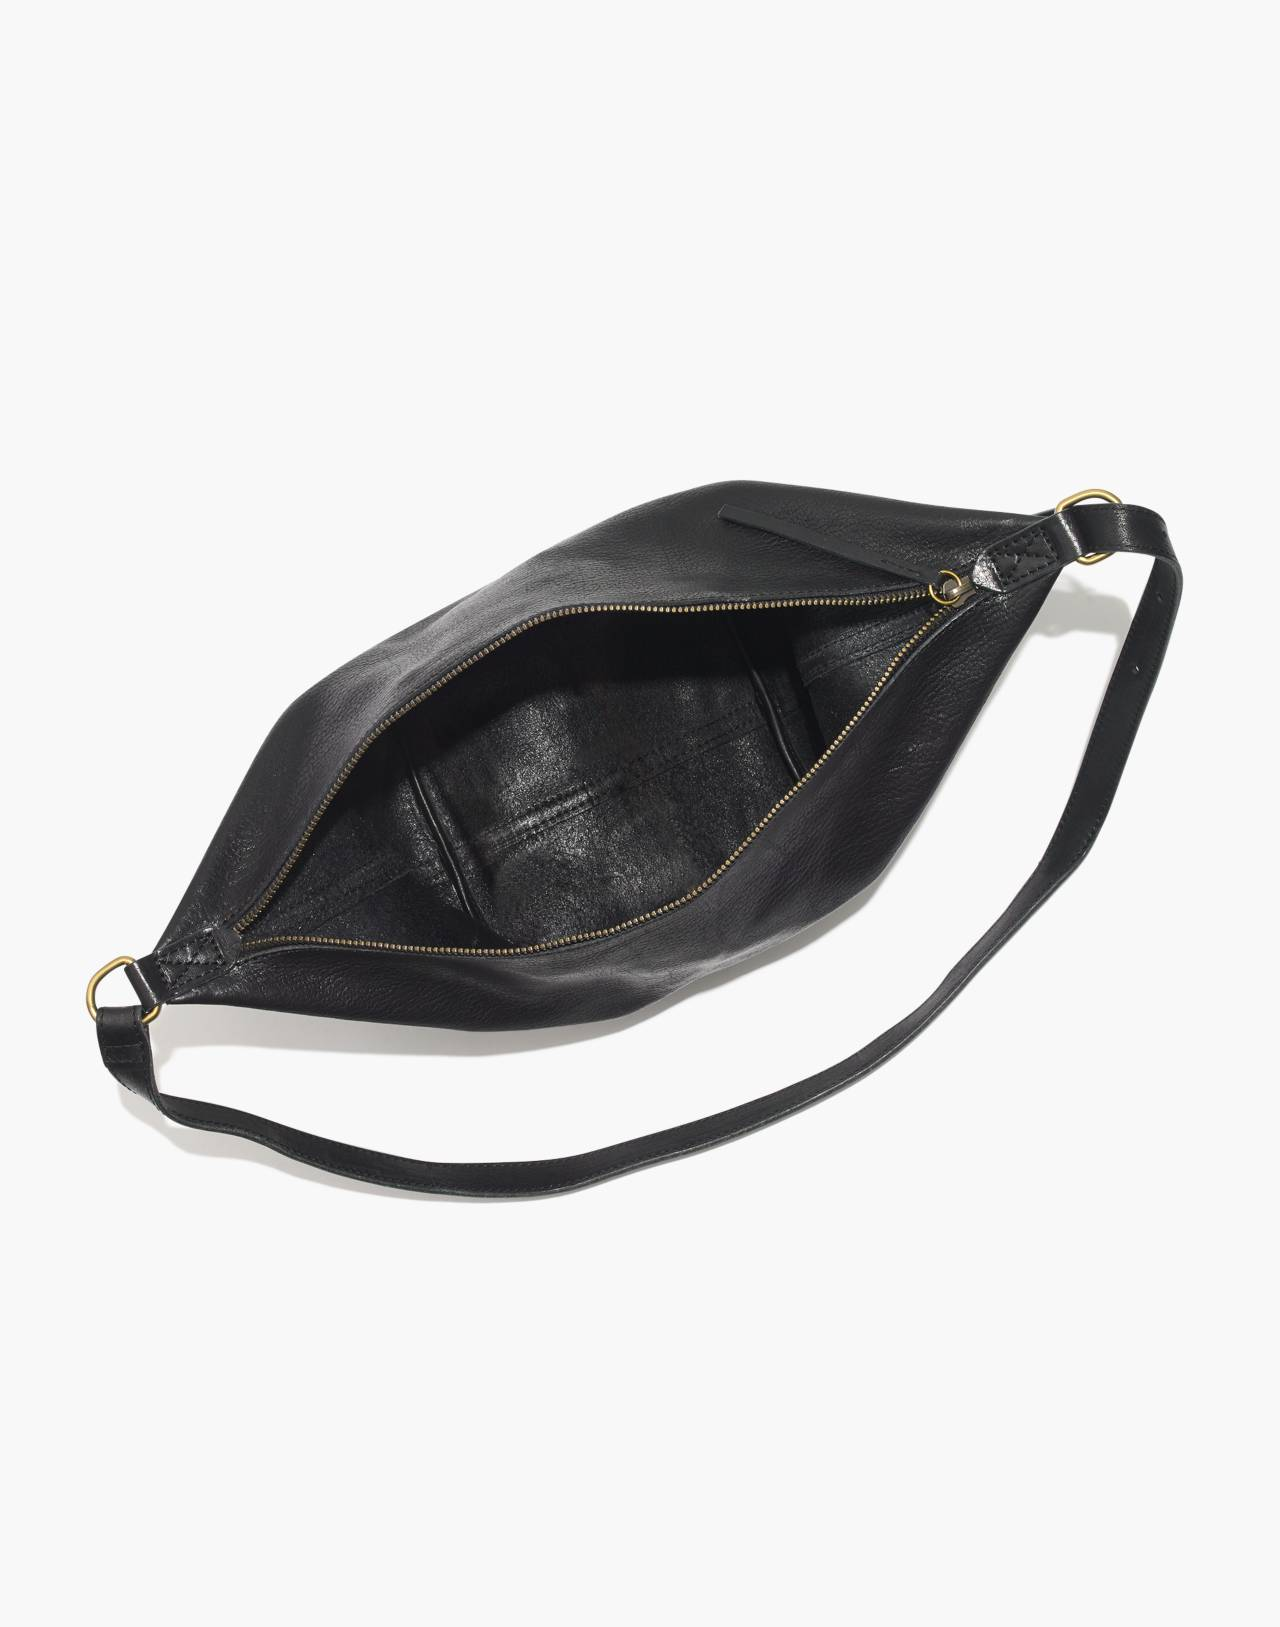 The Leather Sling Bag in true black image 3